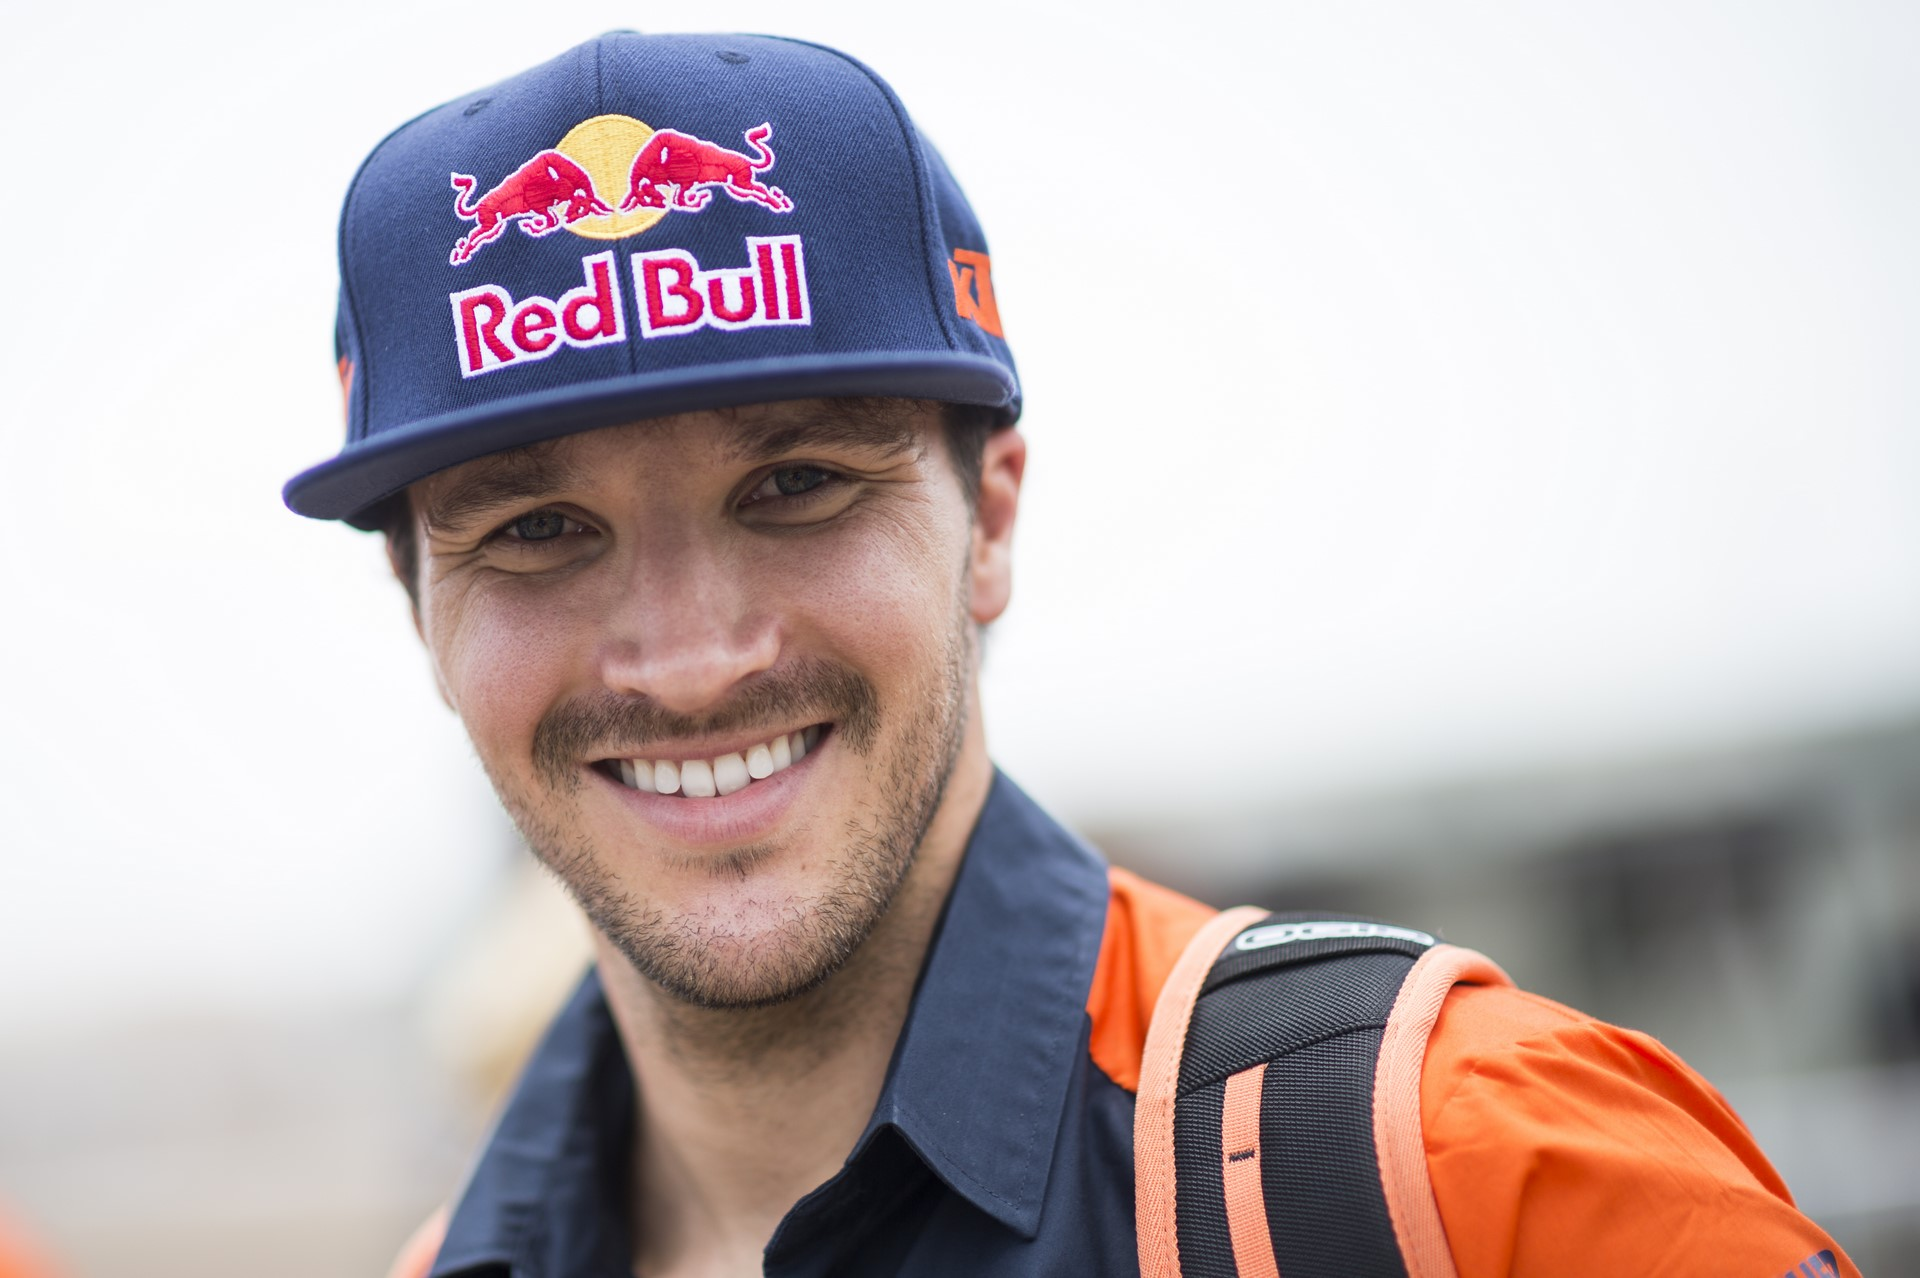 Sam Sunderland (GRB) of Red Bull KTM Factory Team is seen at the technical verifications prior Rally Dakar 2018 in Lima, Peru on January 5, 2018